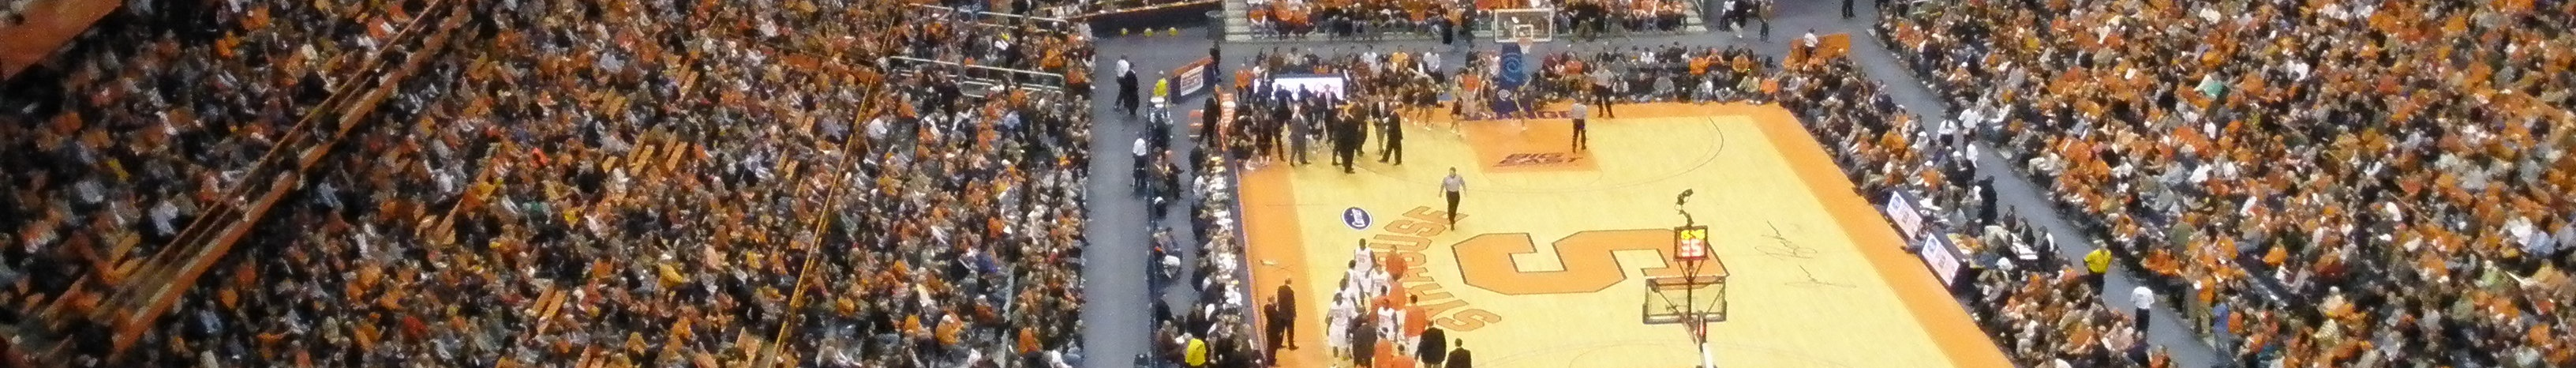 File Syracuse University Carrier Dome Basketball Game Banner